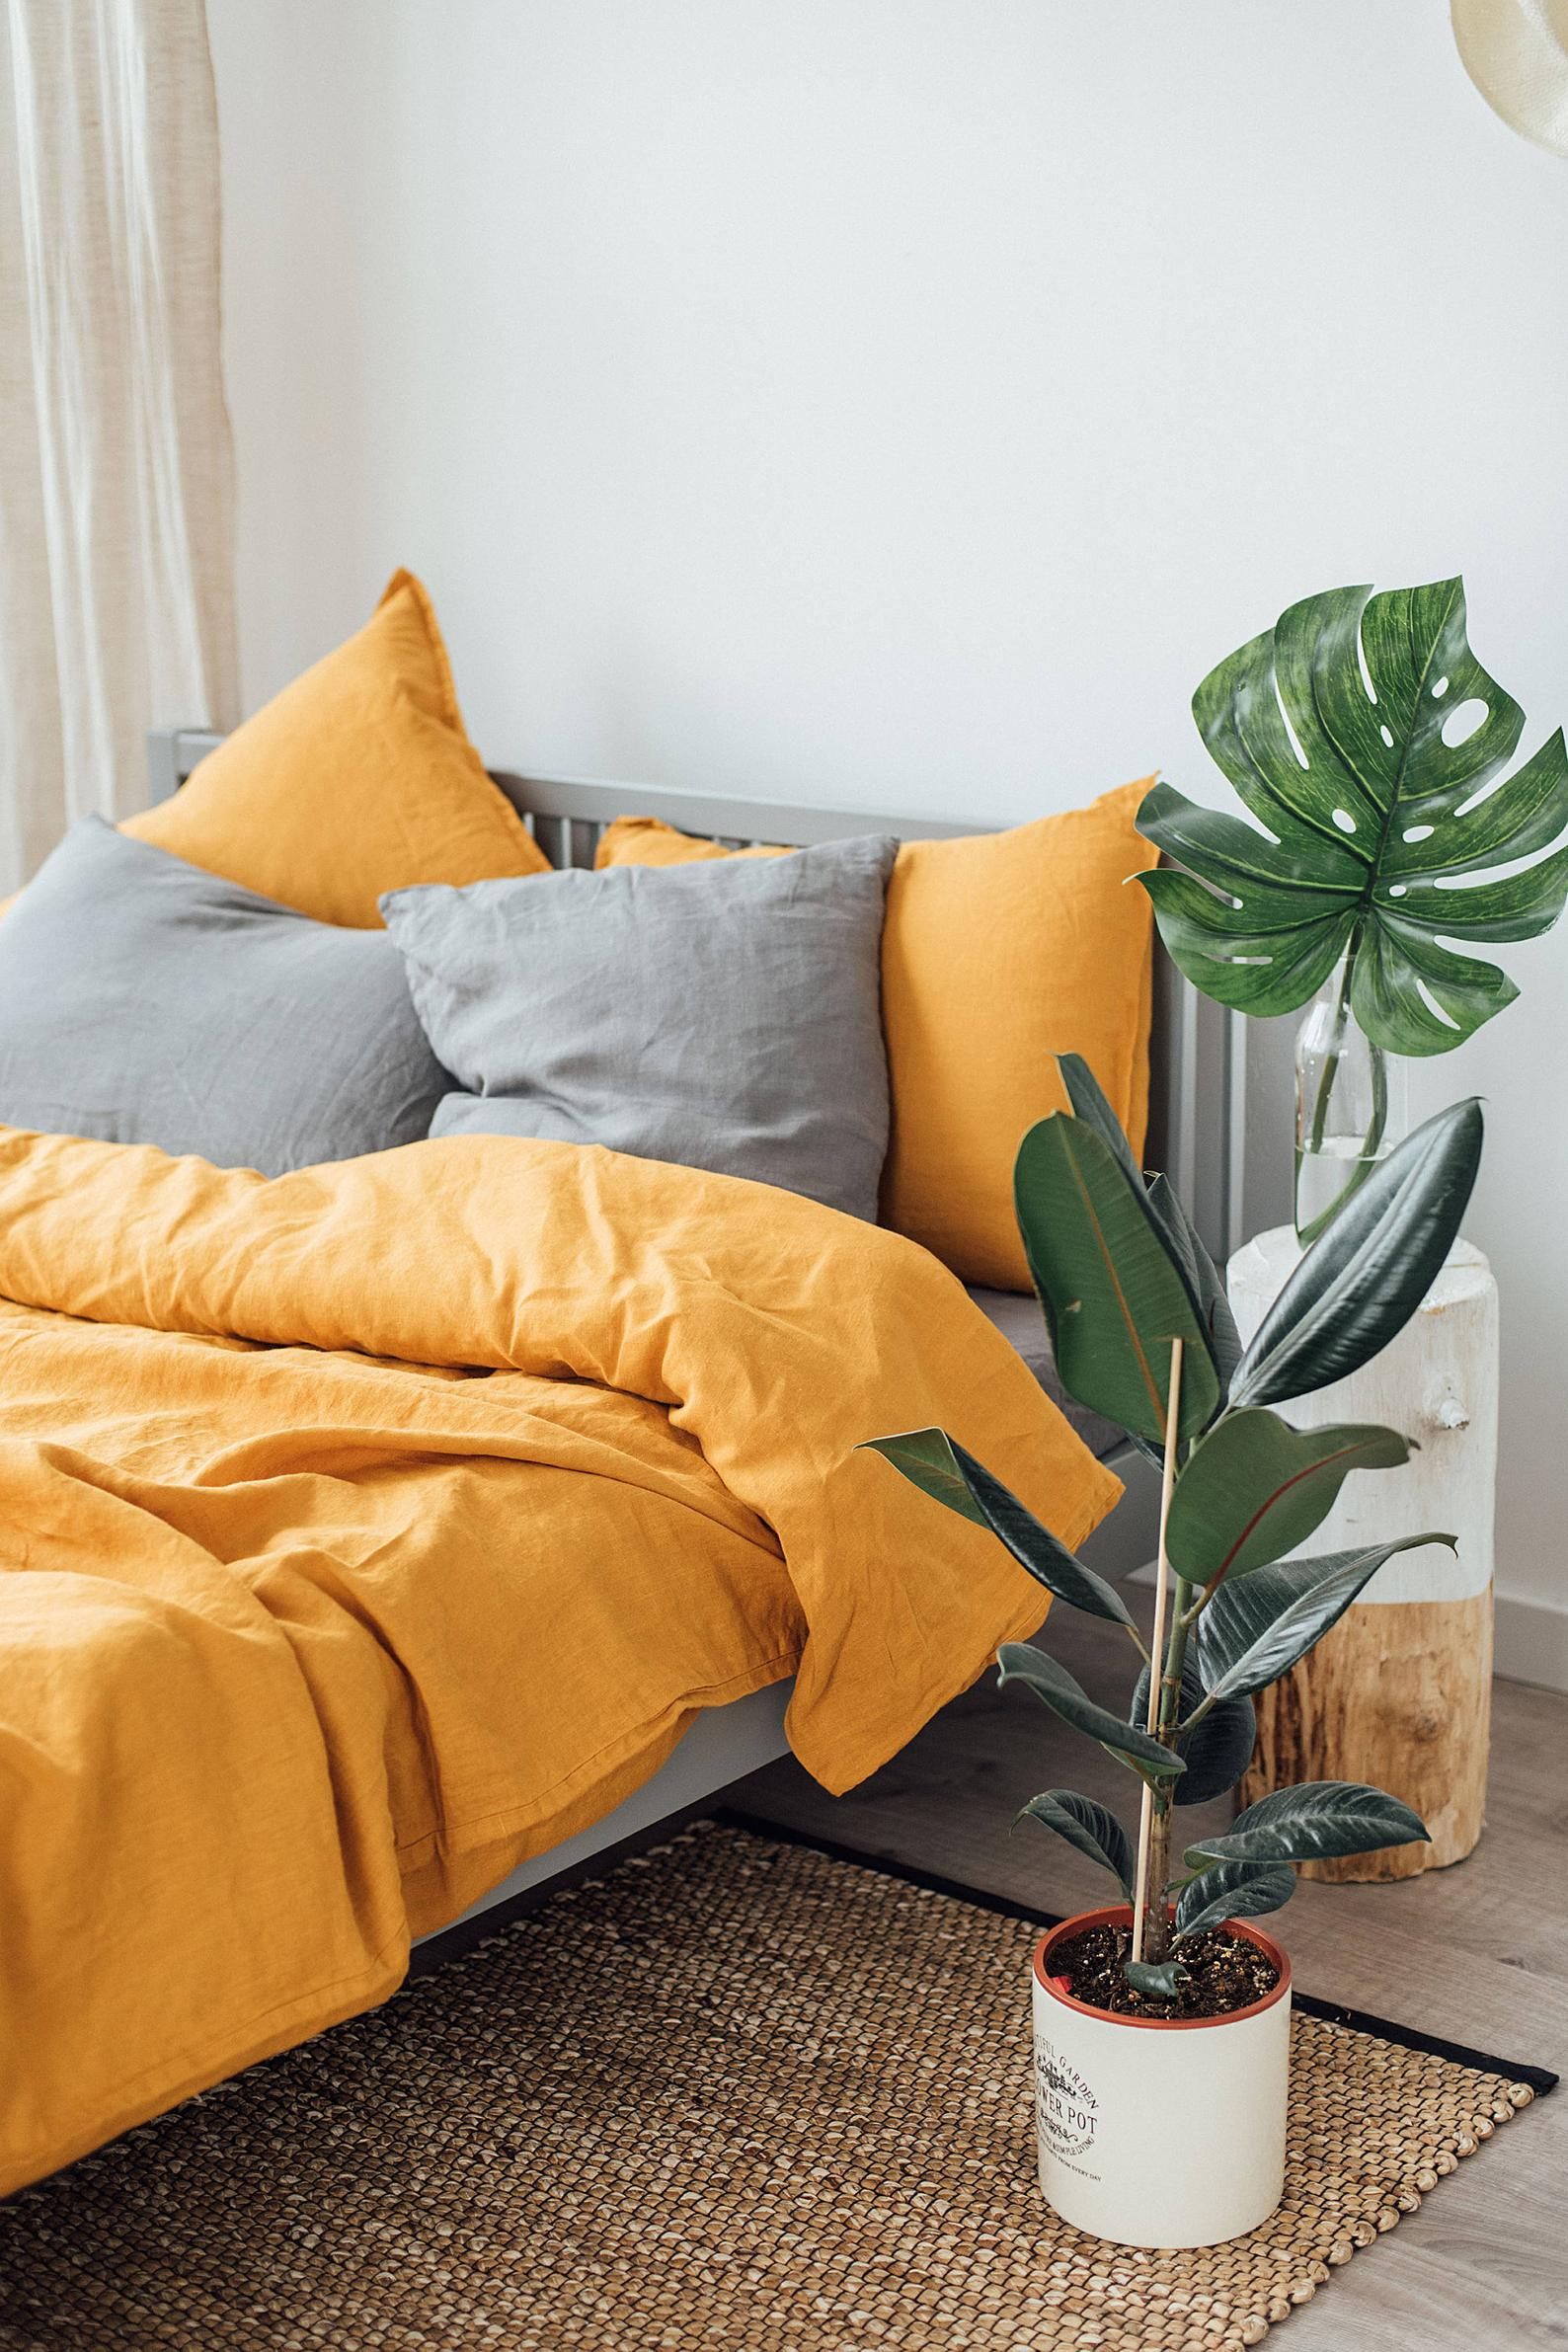 grey-yellow-bed-sheets